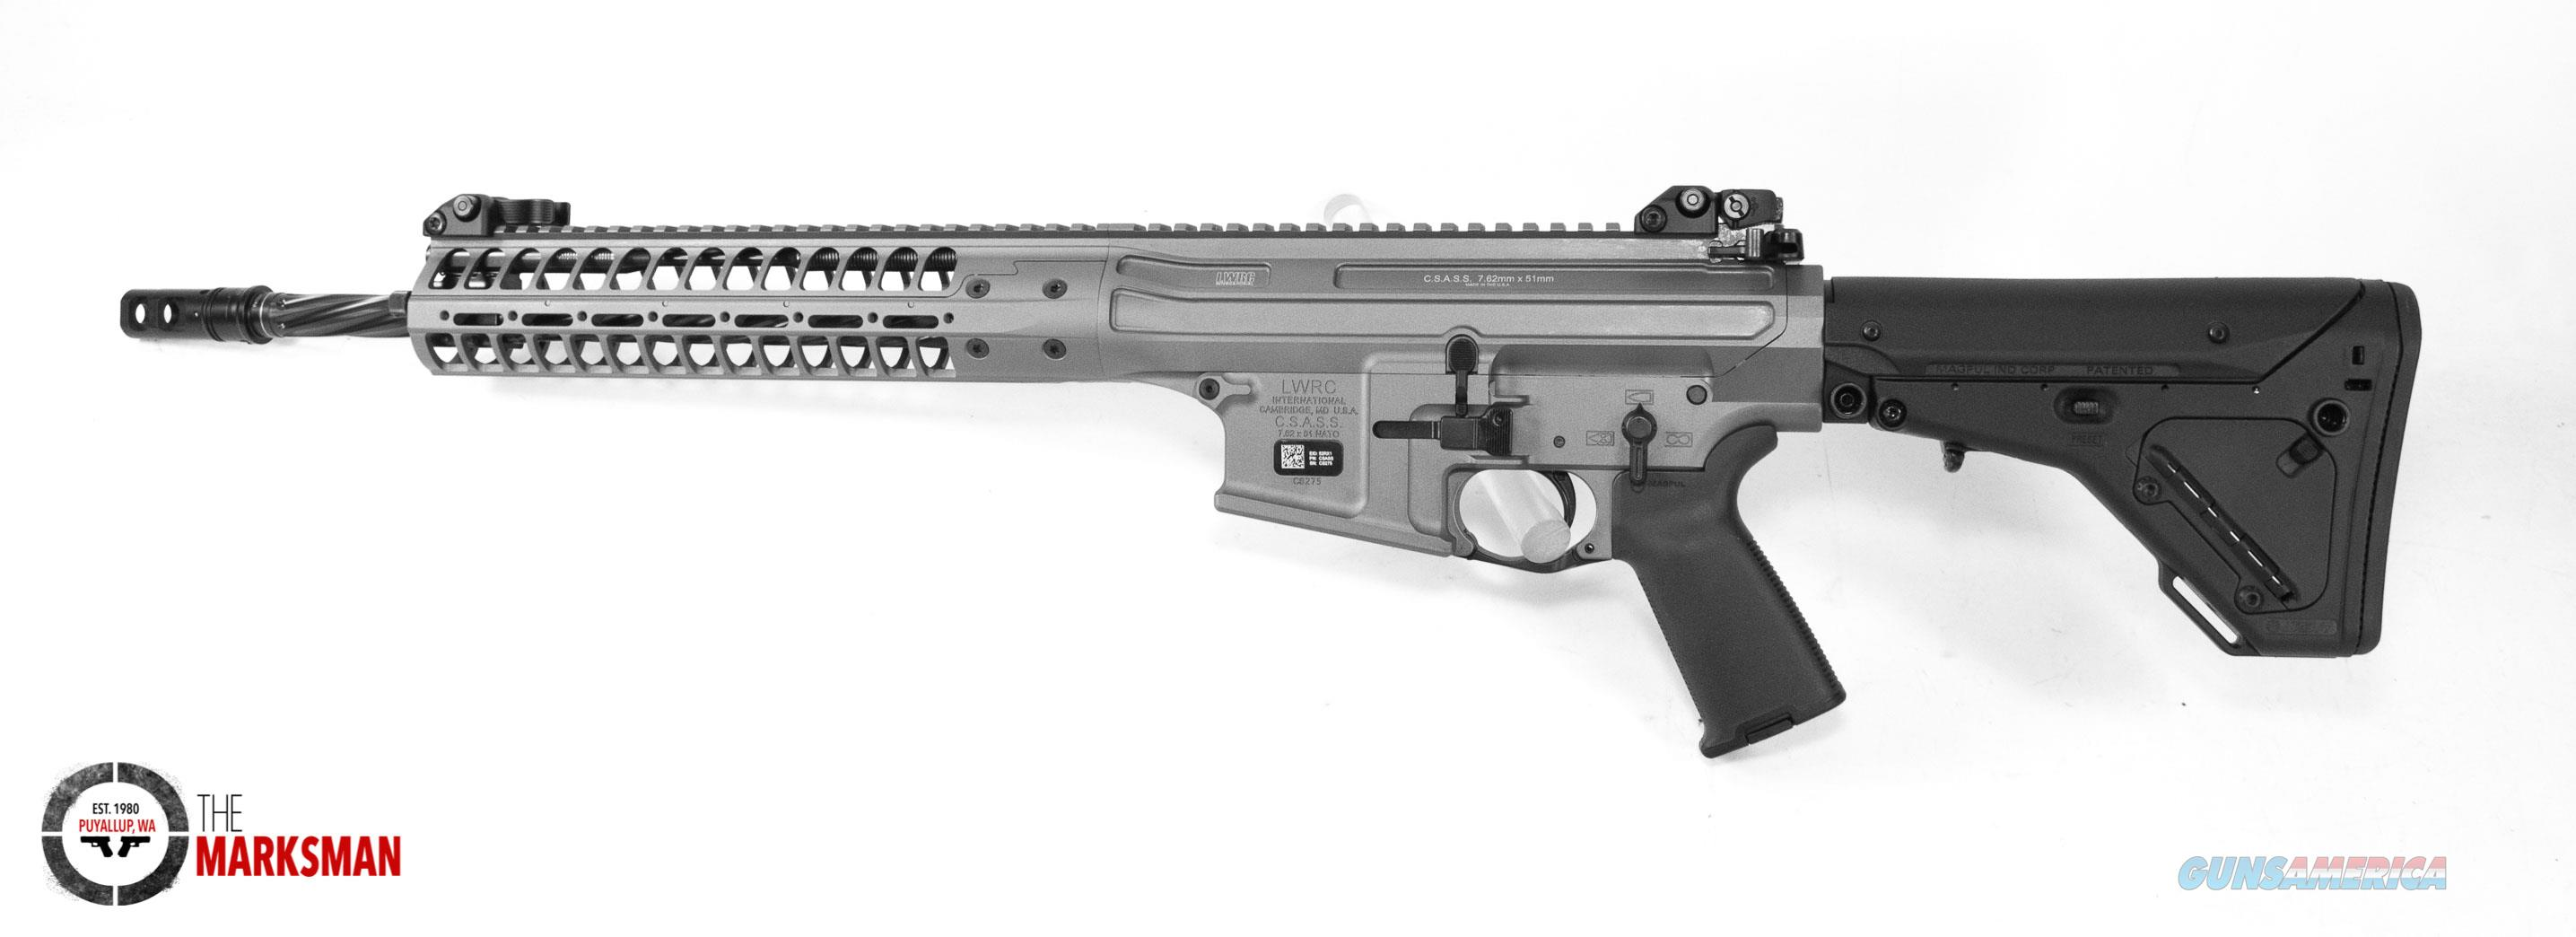 LWRC CSASS .308 Winchester/7.62mm NATO NEW Sniper Grey Cerakote  Guns > Rifles > LWRC Rifles